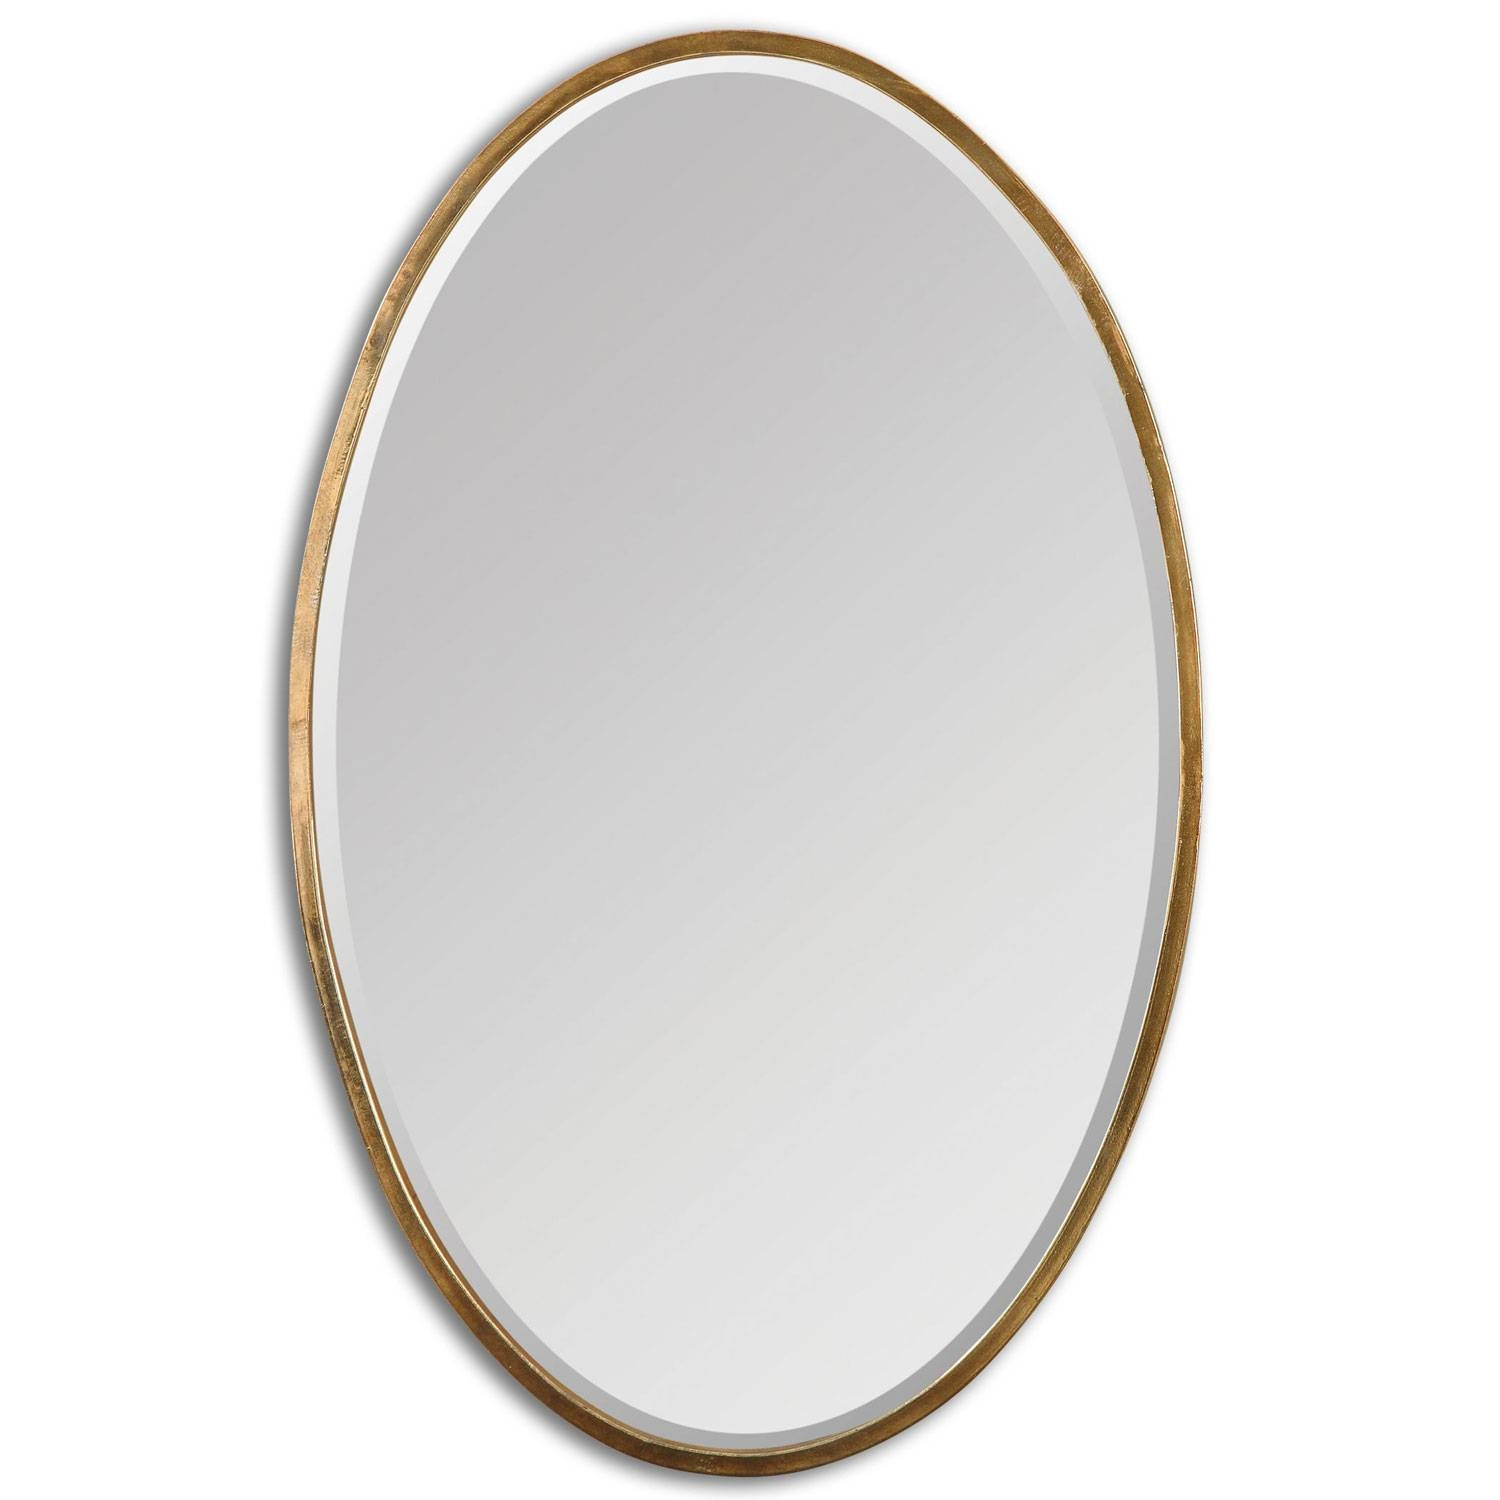 Herleva Oval Antique Gold Oval Mirror Uttermost Wall Mirror pertaining to Antique Gold Mirrors (Image 17 of 25)